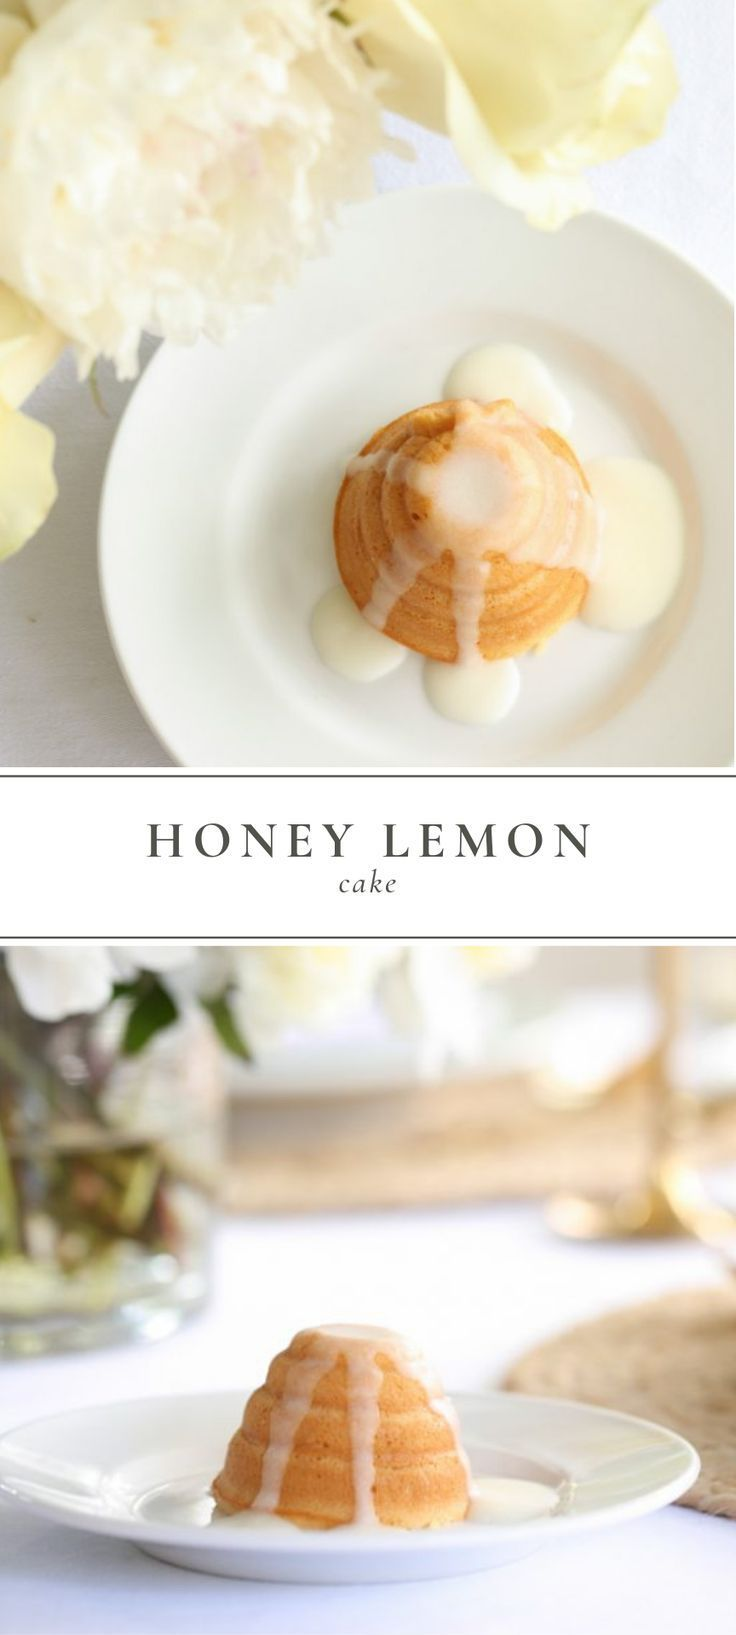 Honey Lemon Cake Recipe This honey lemon cake is just as simple and beautiful, without any addition